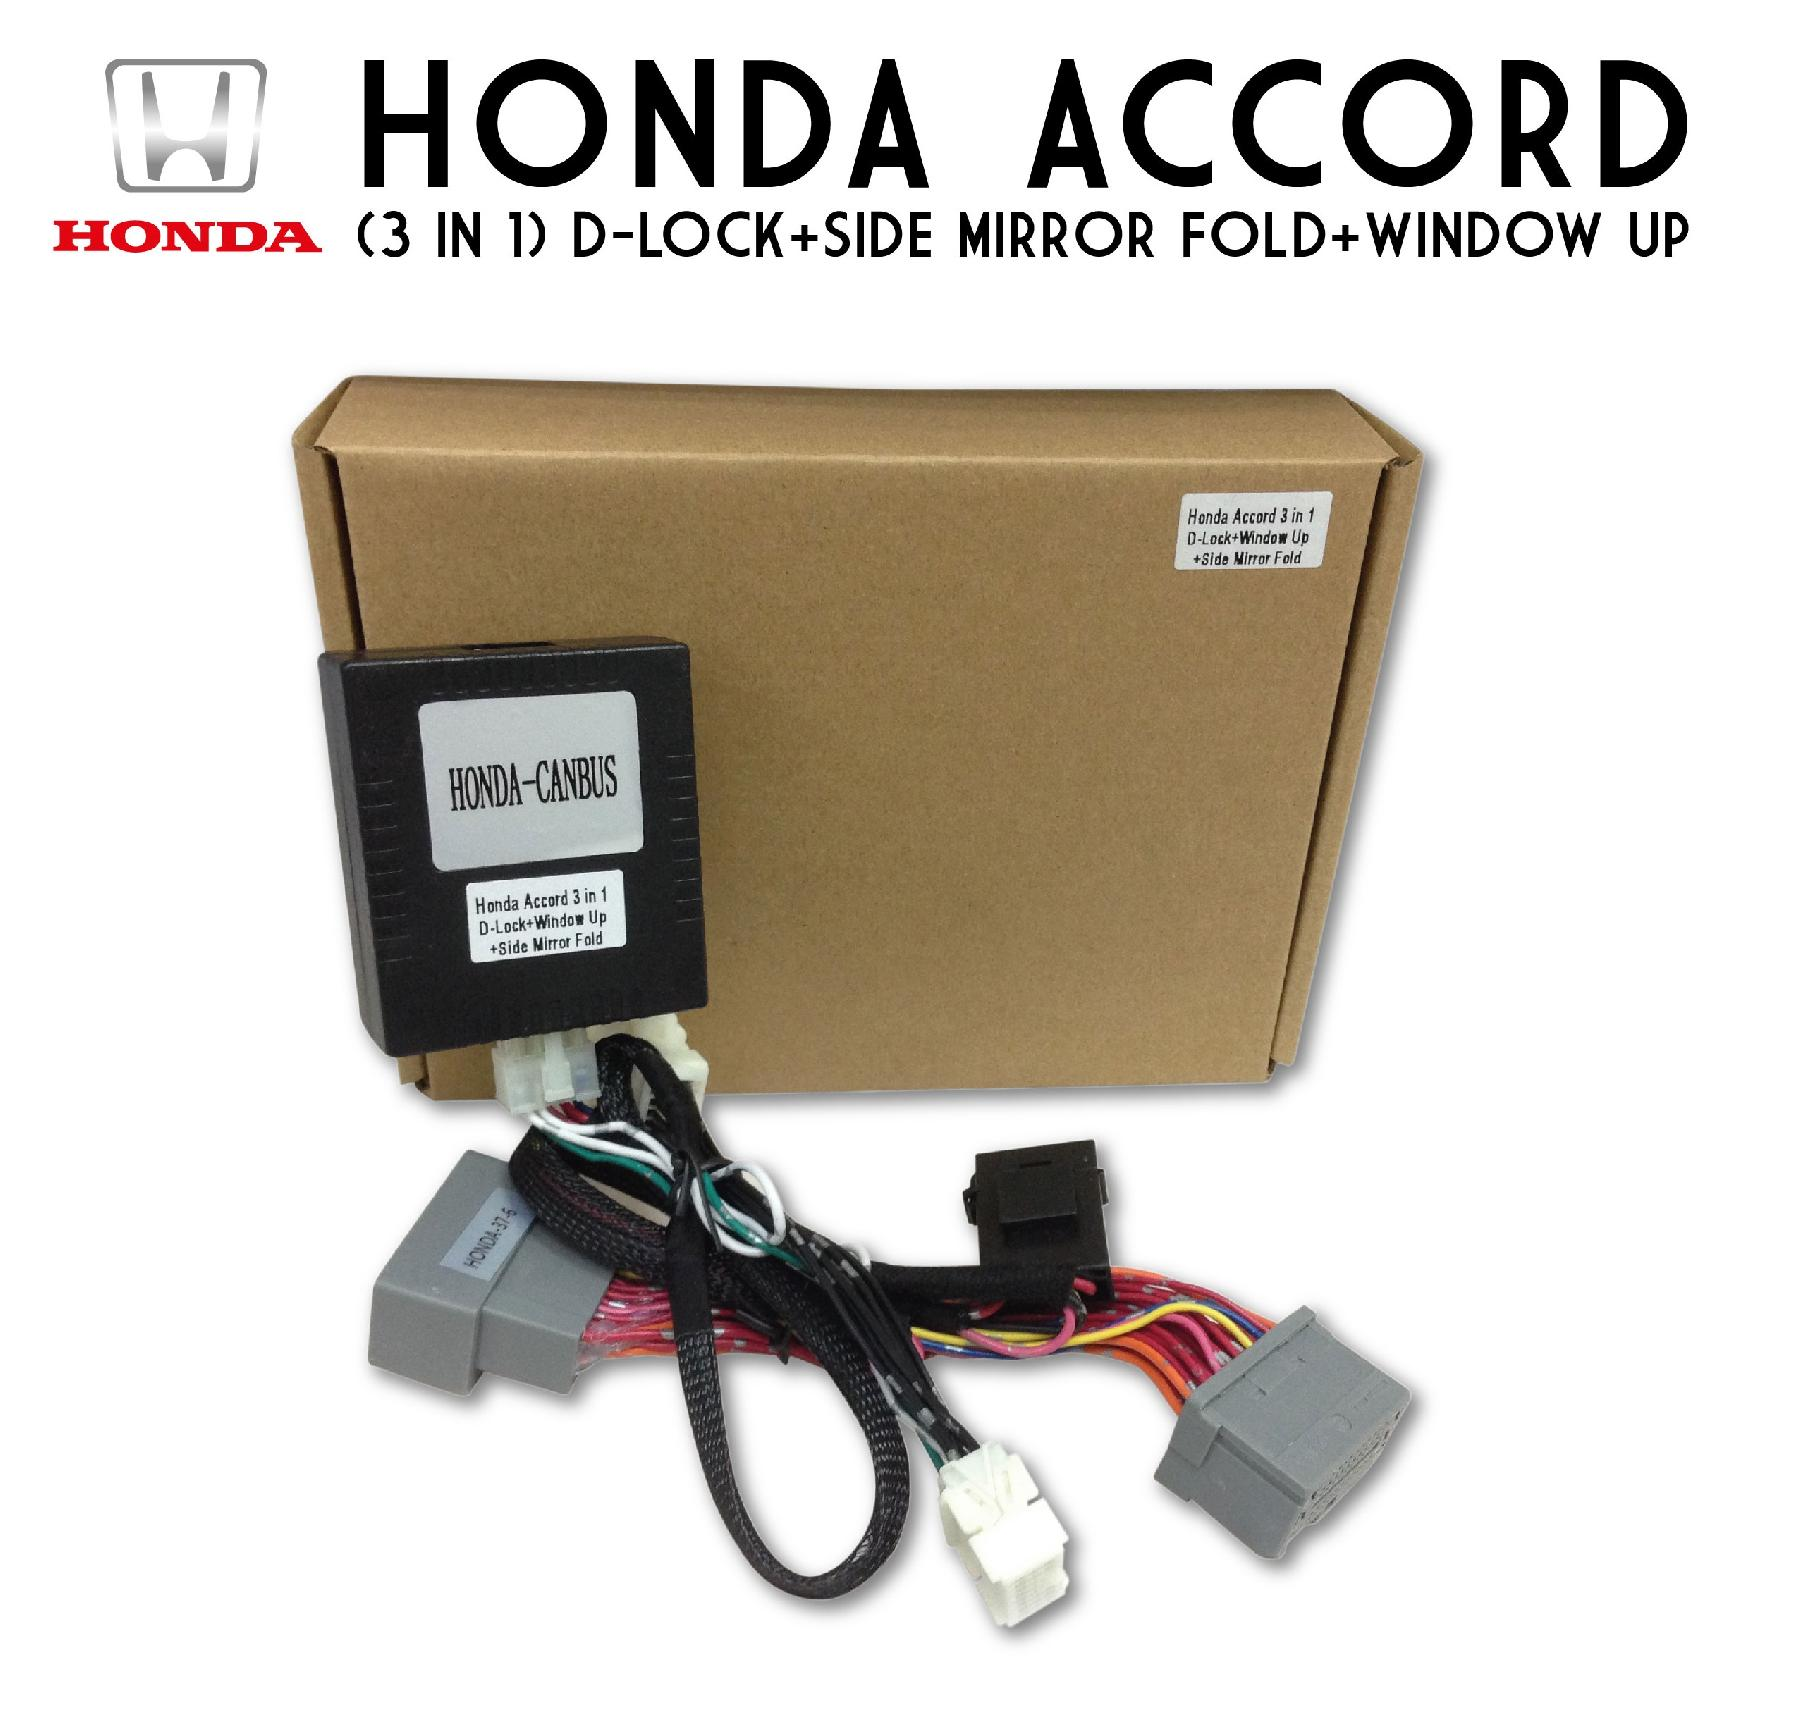 Honda Accord: Close and Lock the Doors